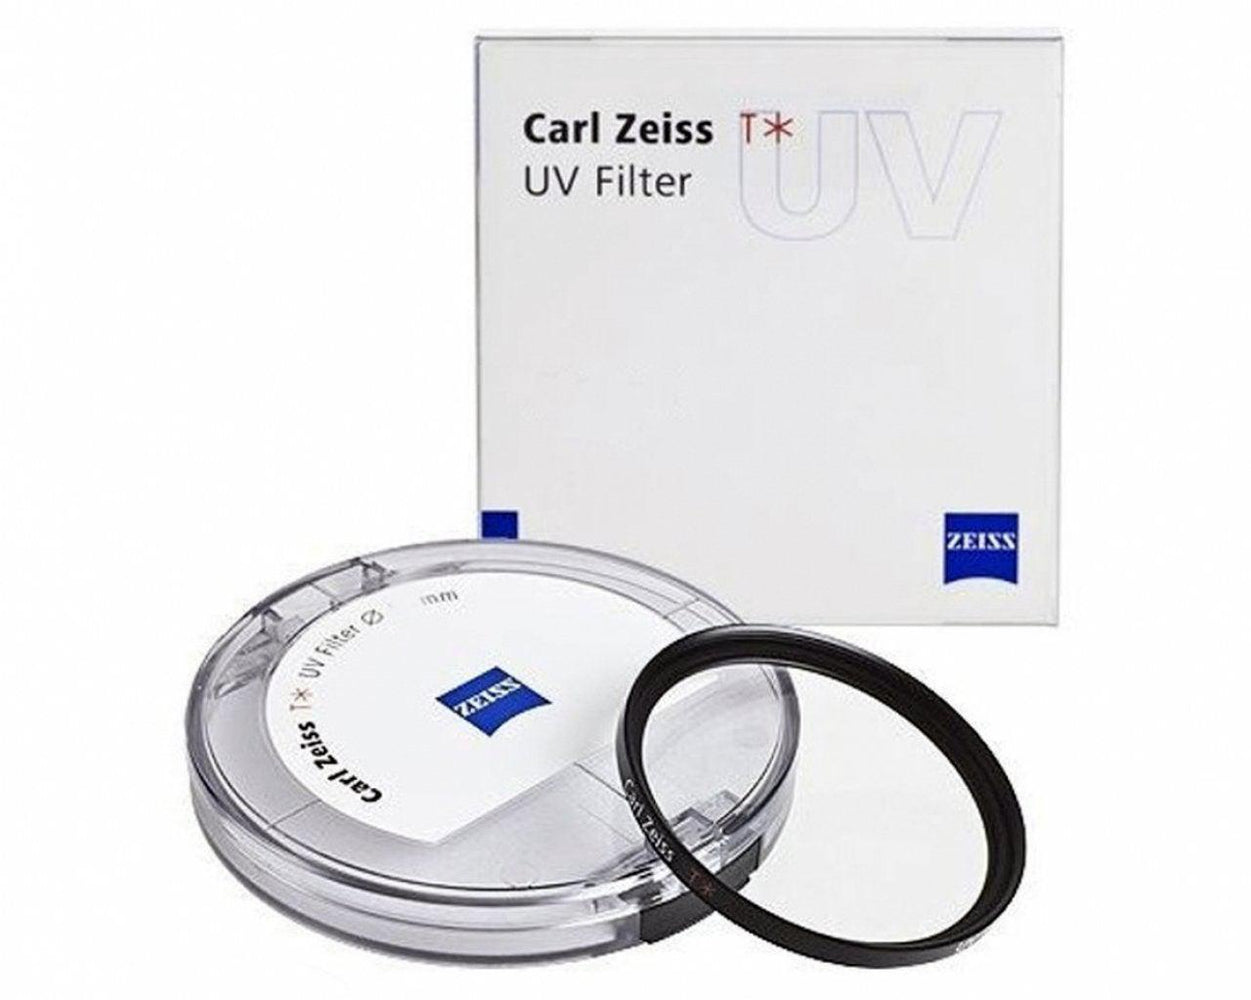 Filtro T* UV Zeiss 72mm